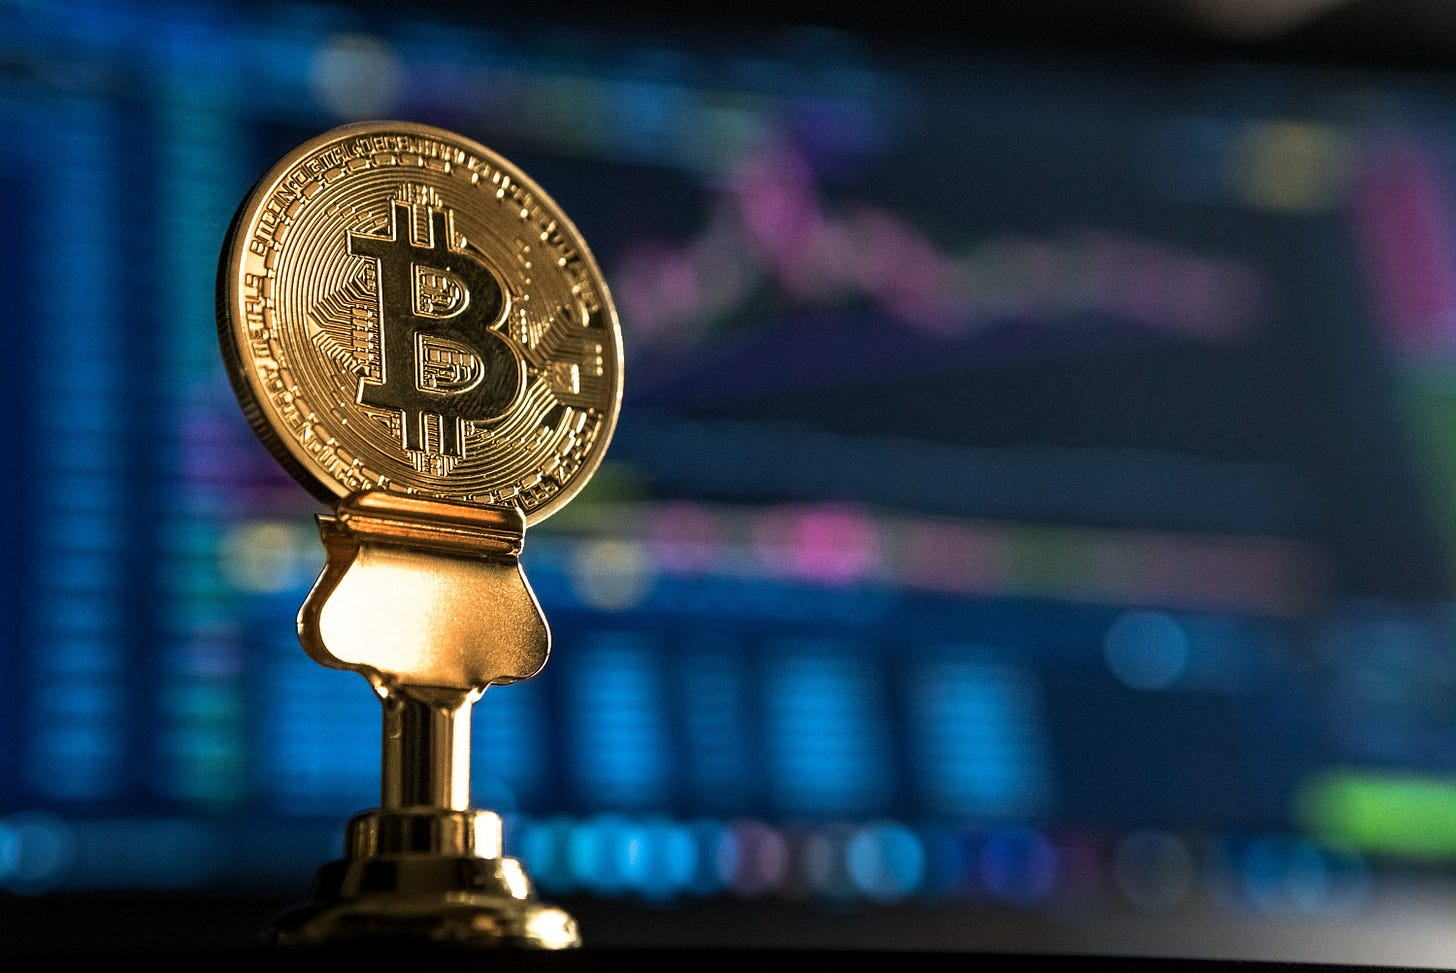 """One Bitcoin """"whale"""" may have fueled the currency's price spike in 2017 